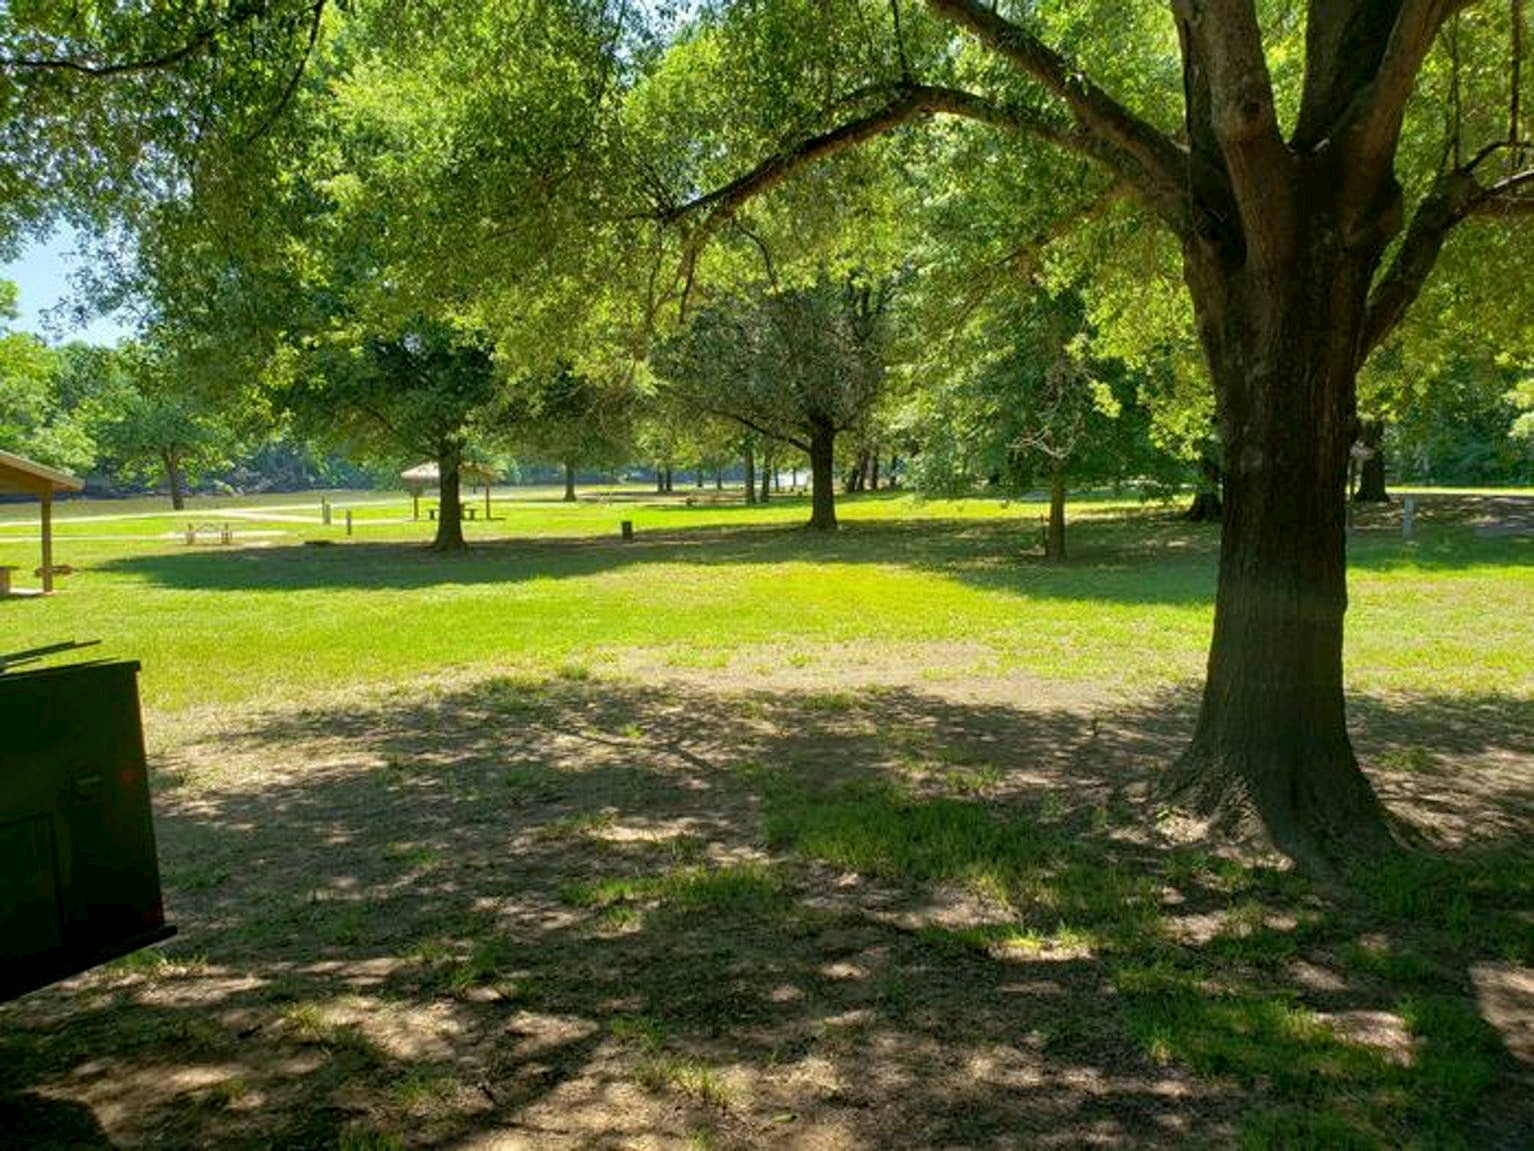 Bright green lawn with trees planted around the perimeter at Clear Creek Campground.